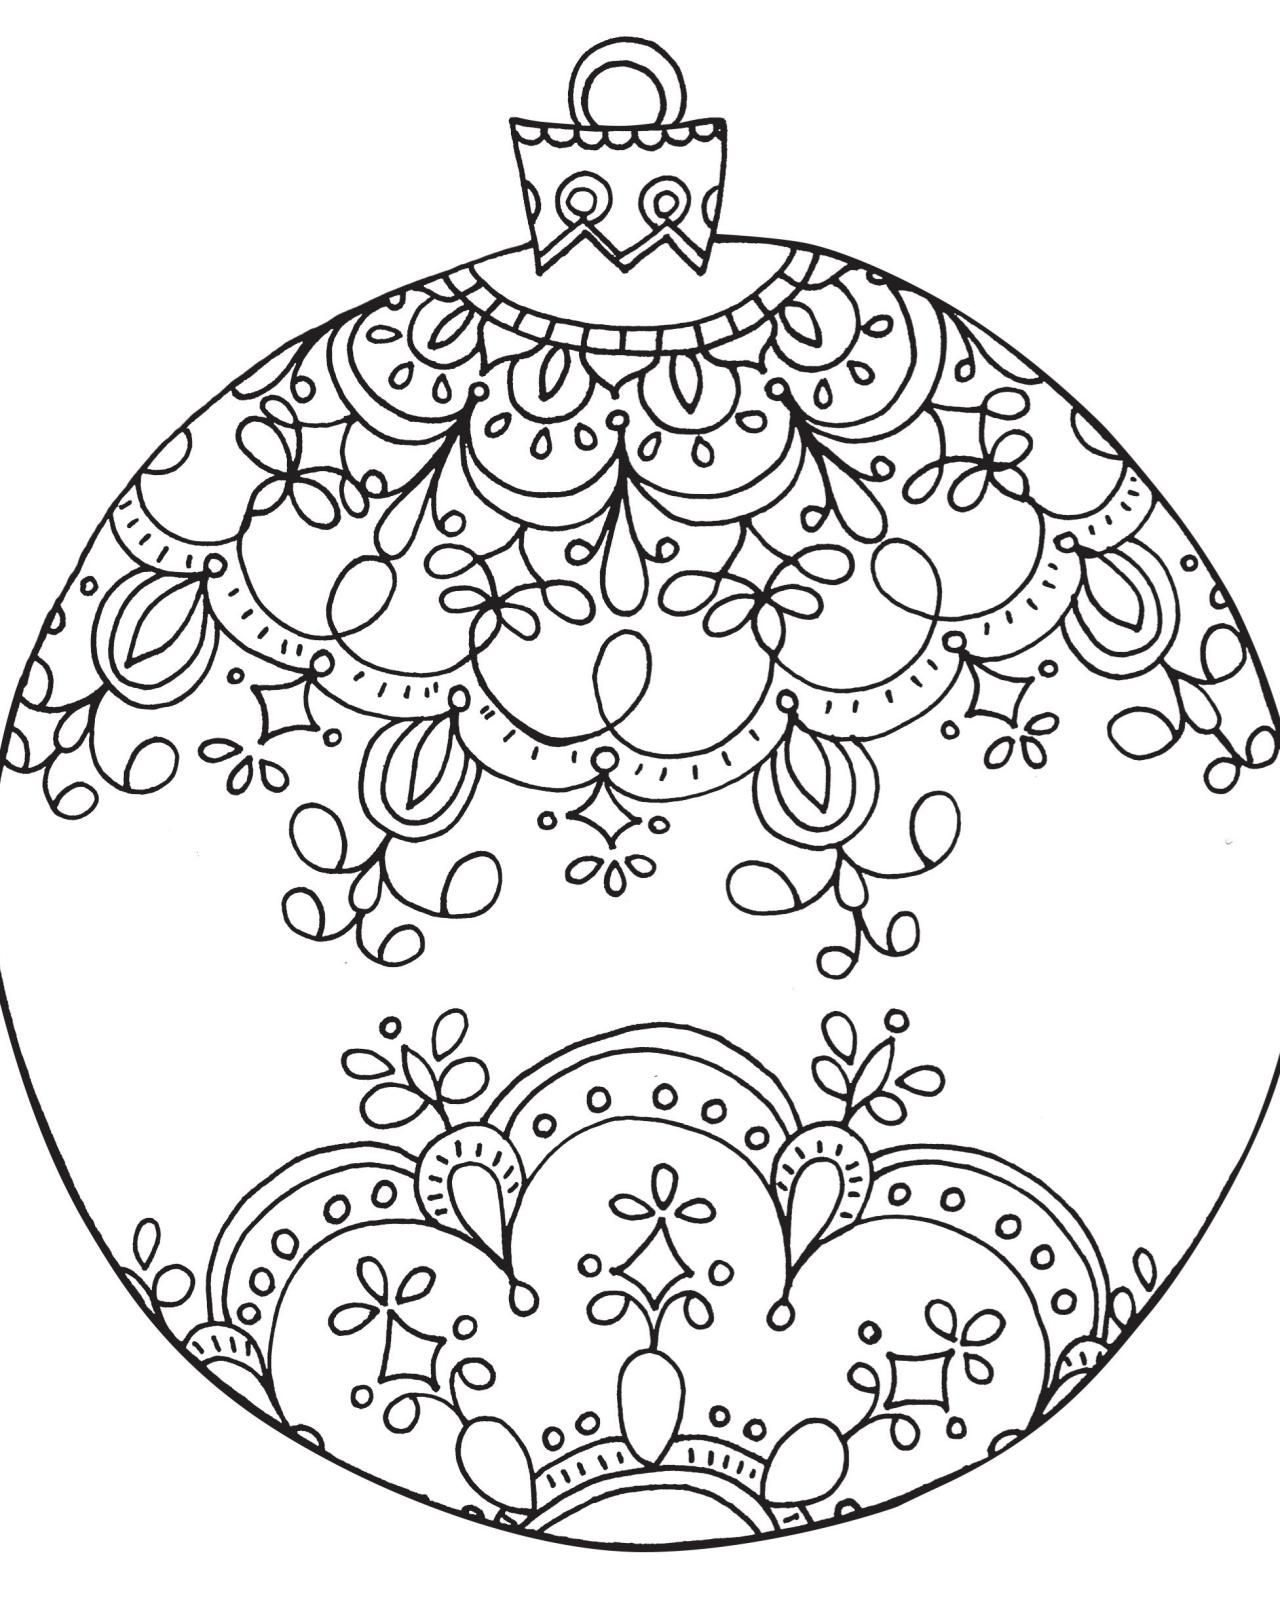 Christmas Globe Coloring Pages With Snow To Print Free Books